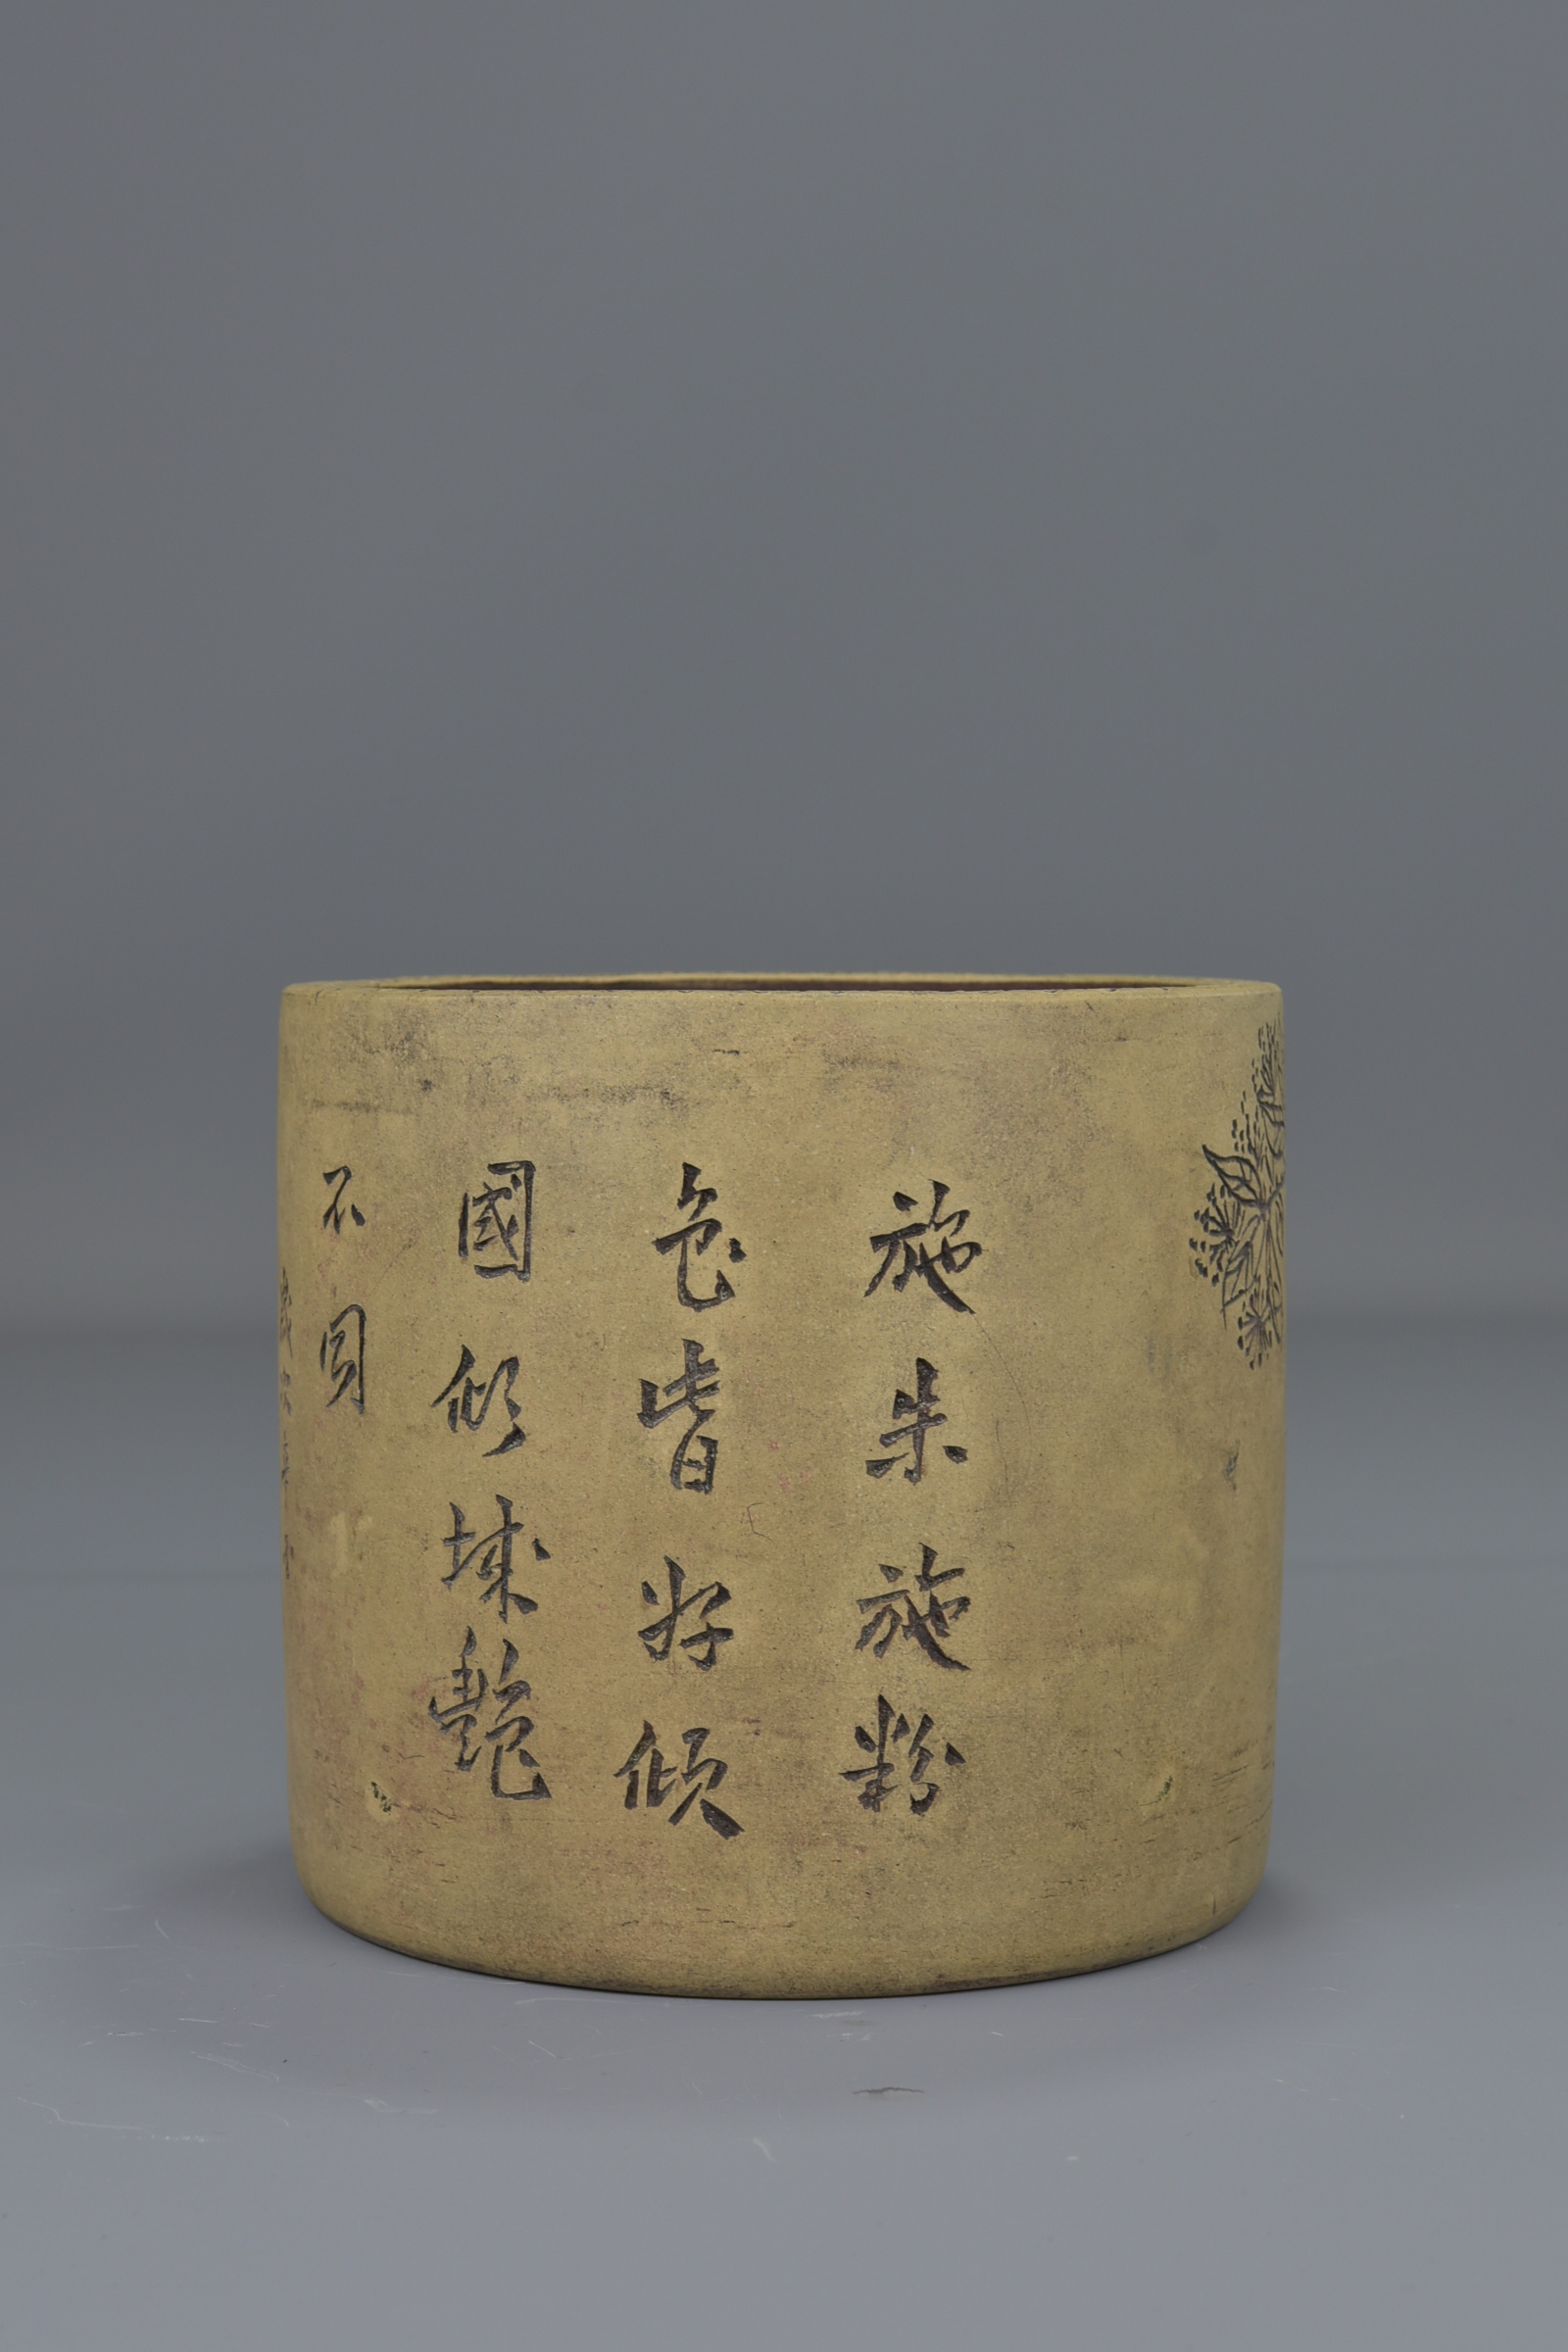 Lot 54 - A Chinese 19th century Yixing brush pot with inscriptions and makers mark to base. 13cm tall